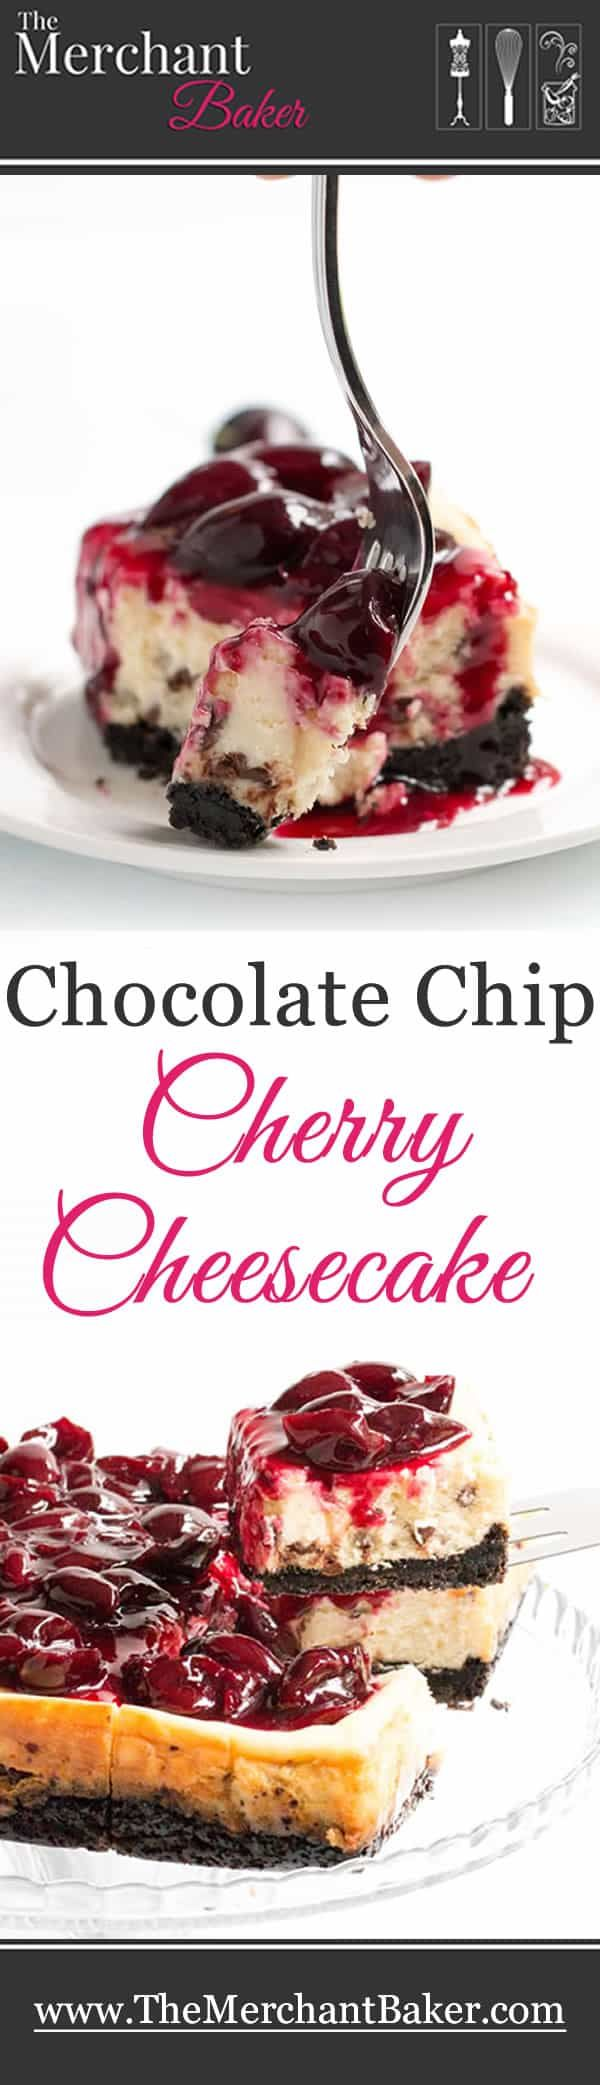 Chocolate Chip Cherry Cheesecake Chocolate Chip Cherry Cheesecake. A fresh sweet cherry sauce tops this easy to make cheesecake. A super fudgy cookie crust takes it over the top!